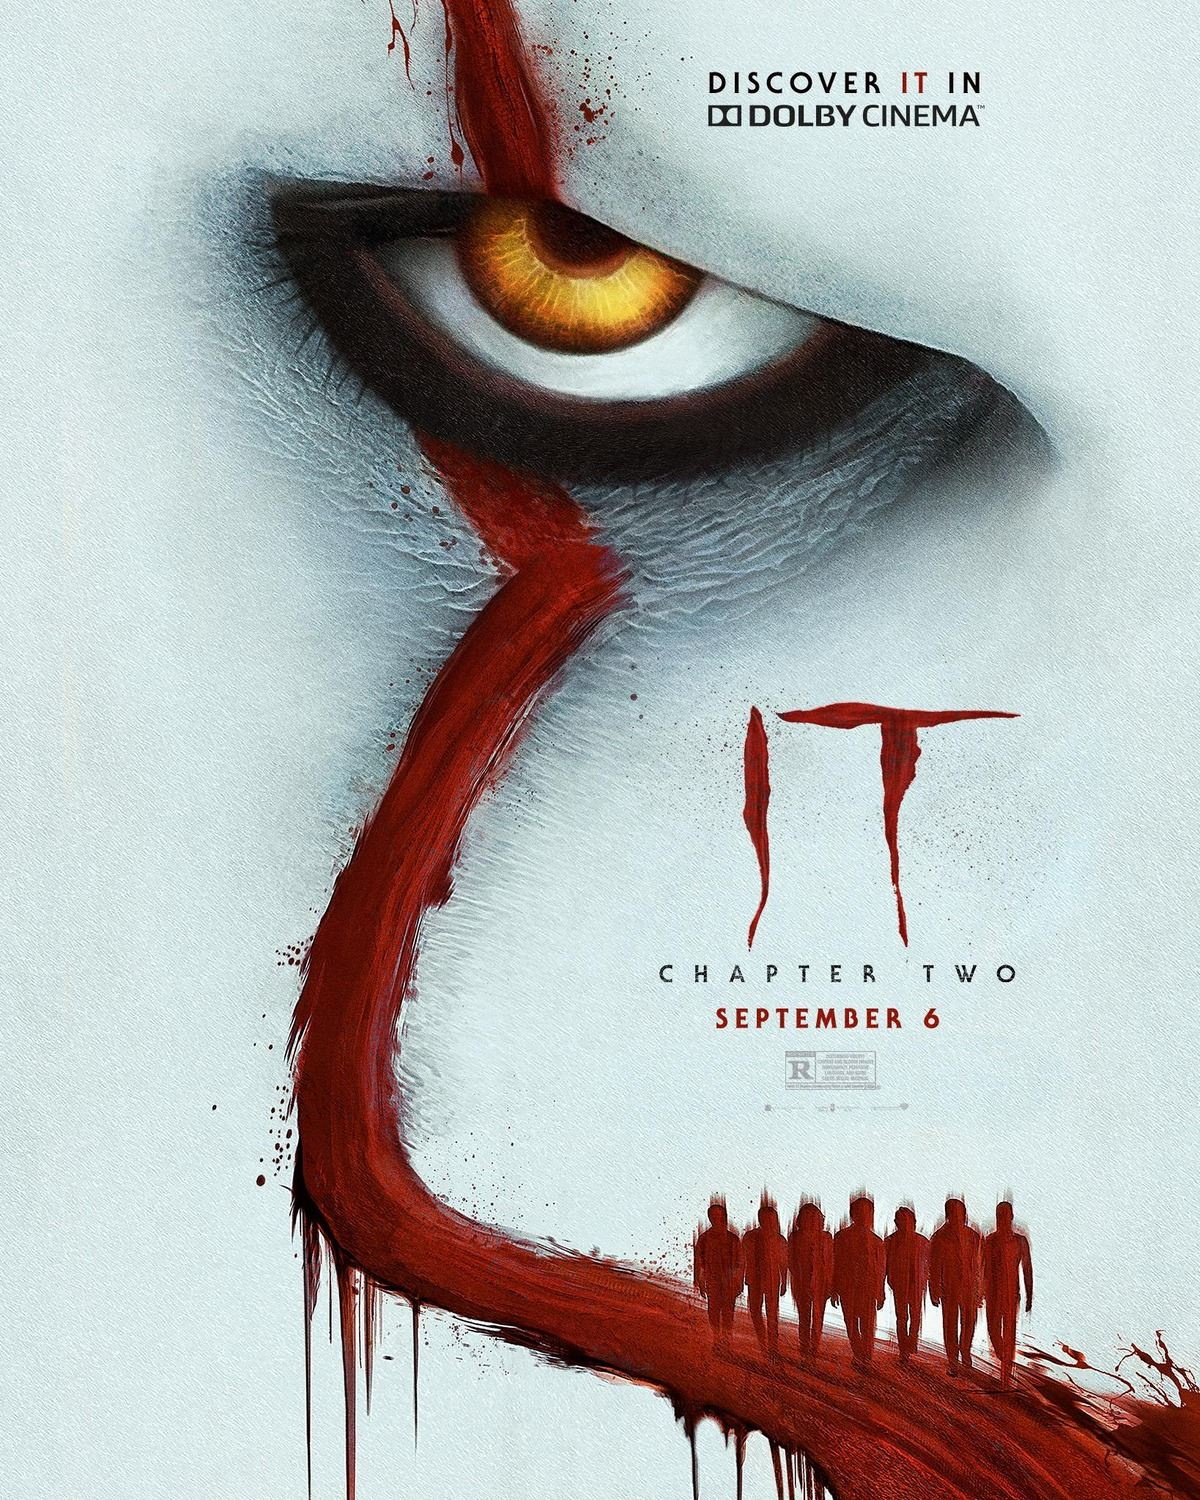 it-capitolo-2-poster-dolby-cinema-maxw-1280